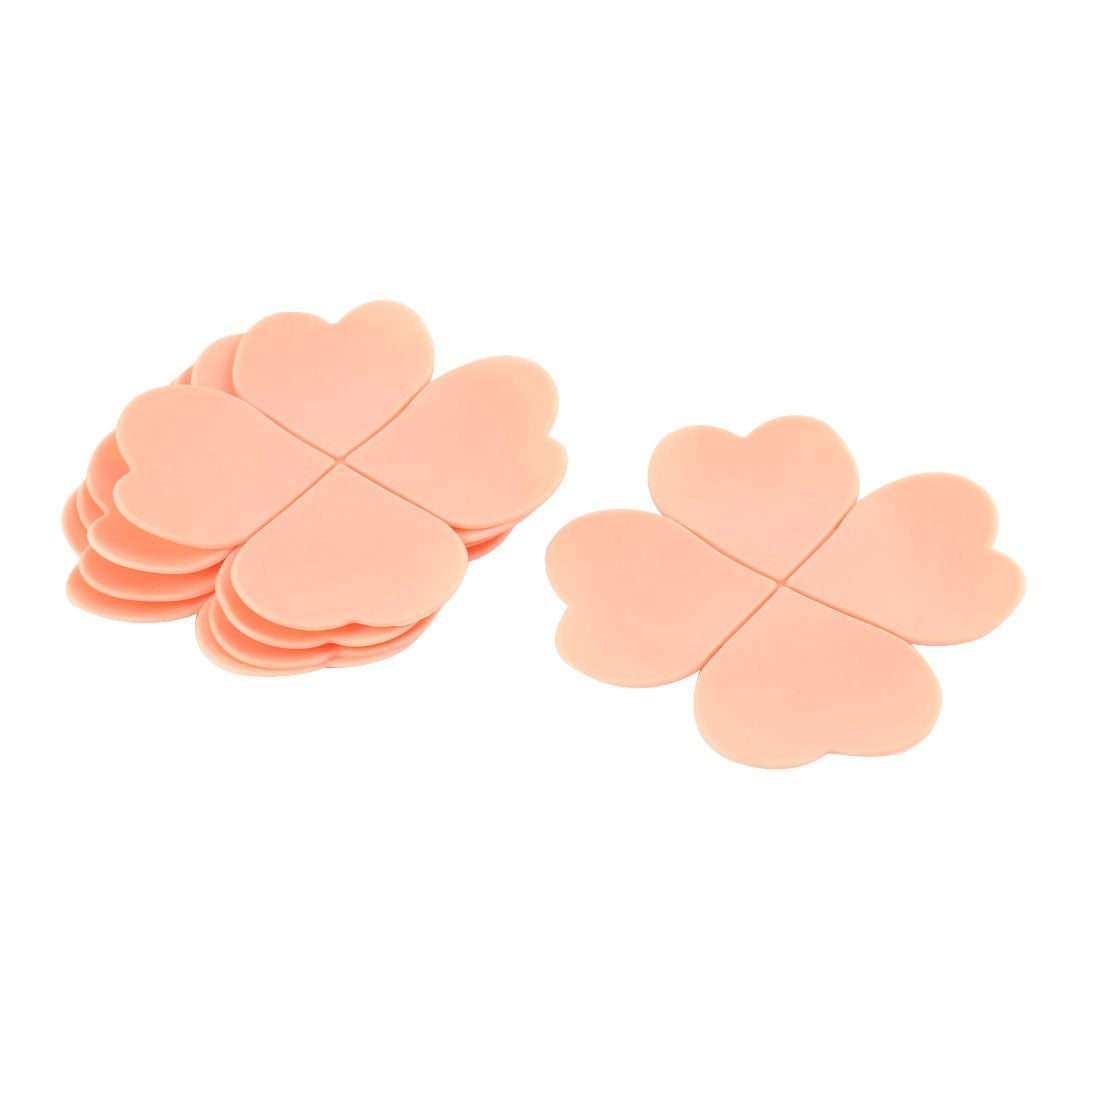 Shop Family Desk Table Silicone Four Leaf Clover Shape Coaster Cup